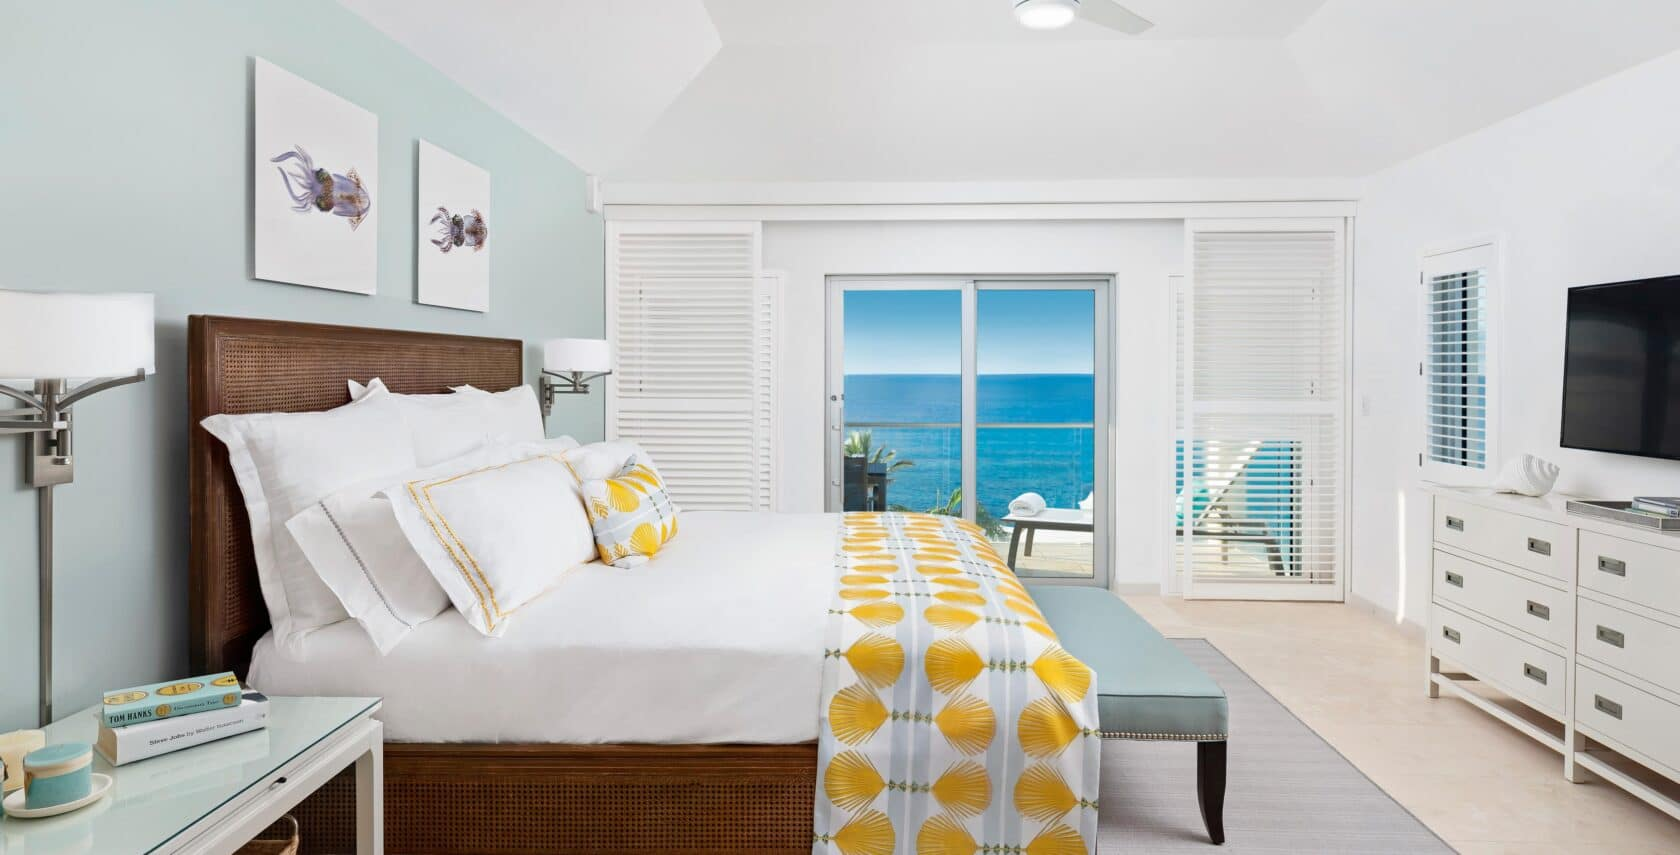 A bedroom with glass doors showing an ocean view.